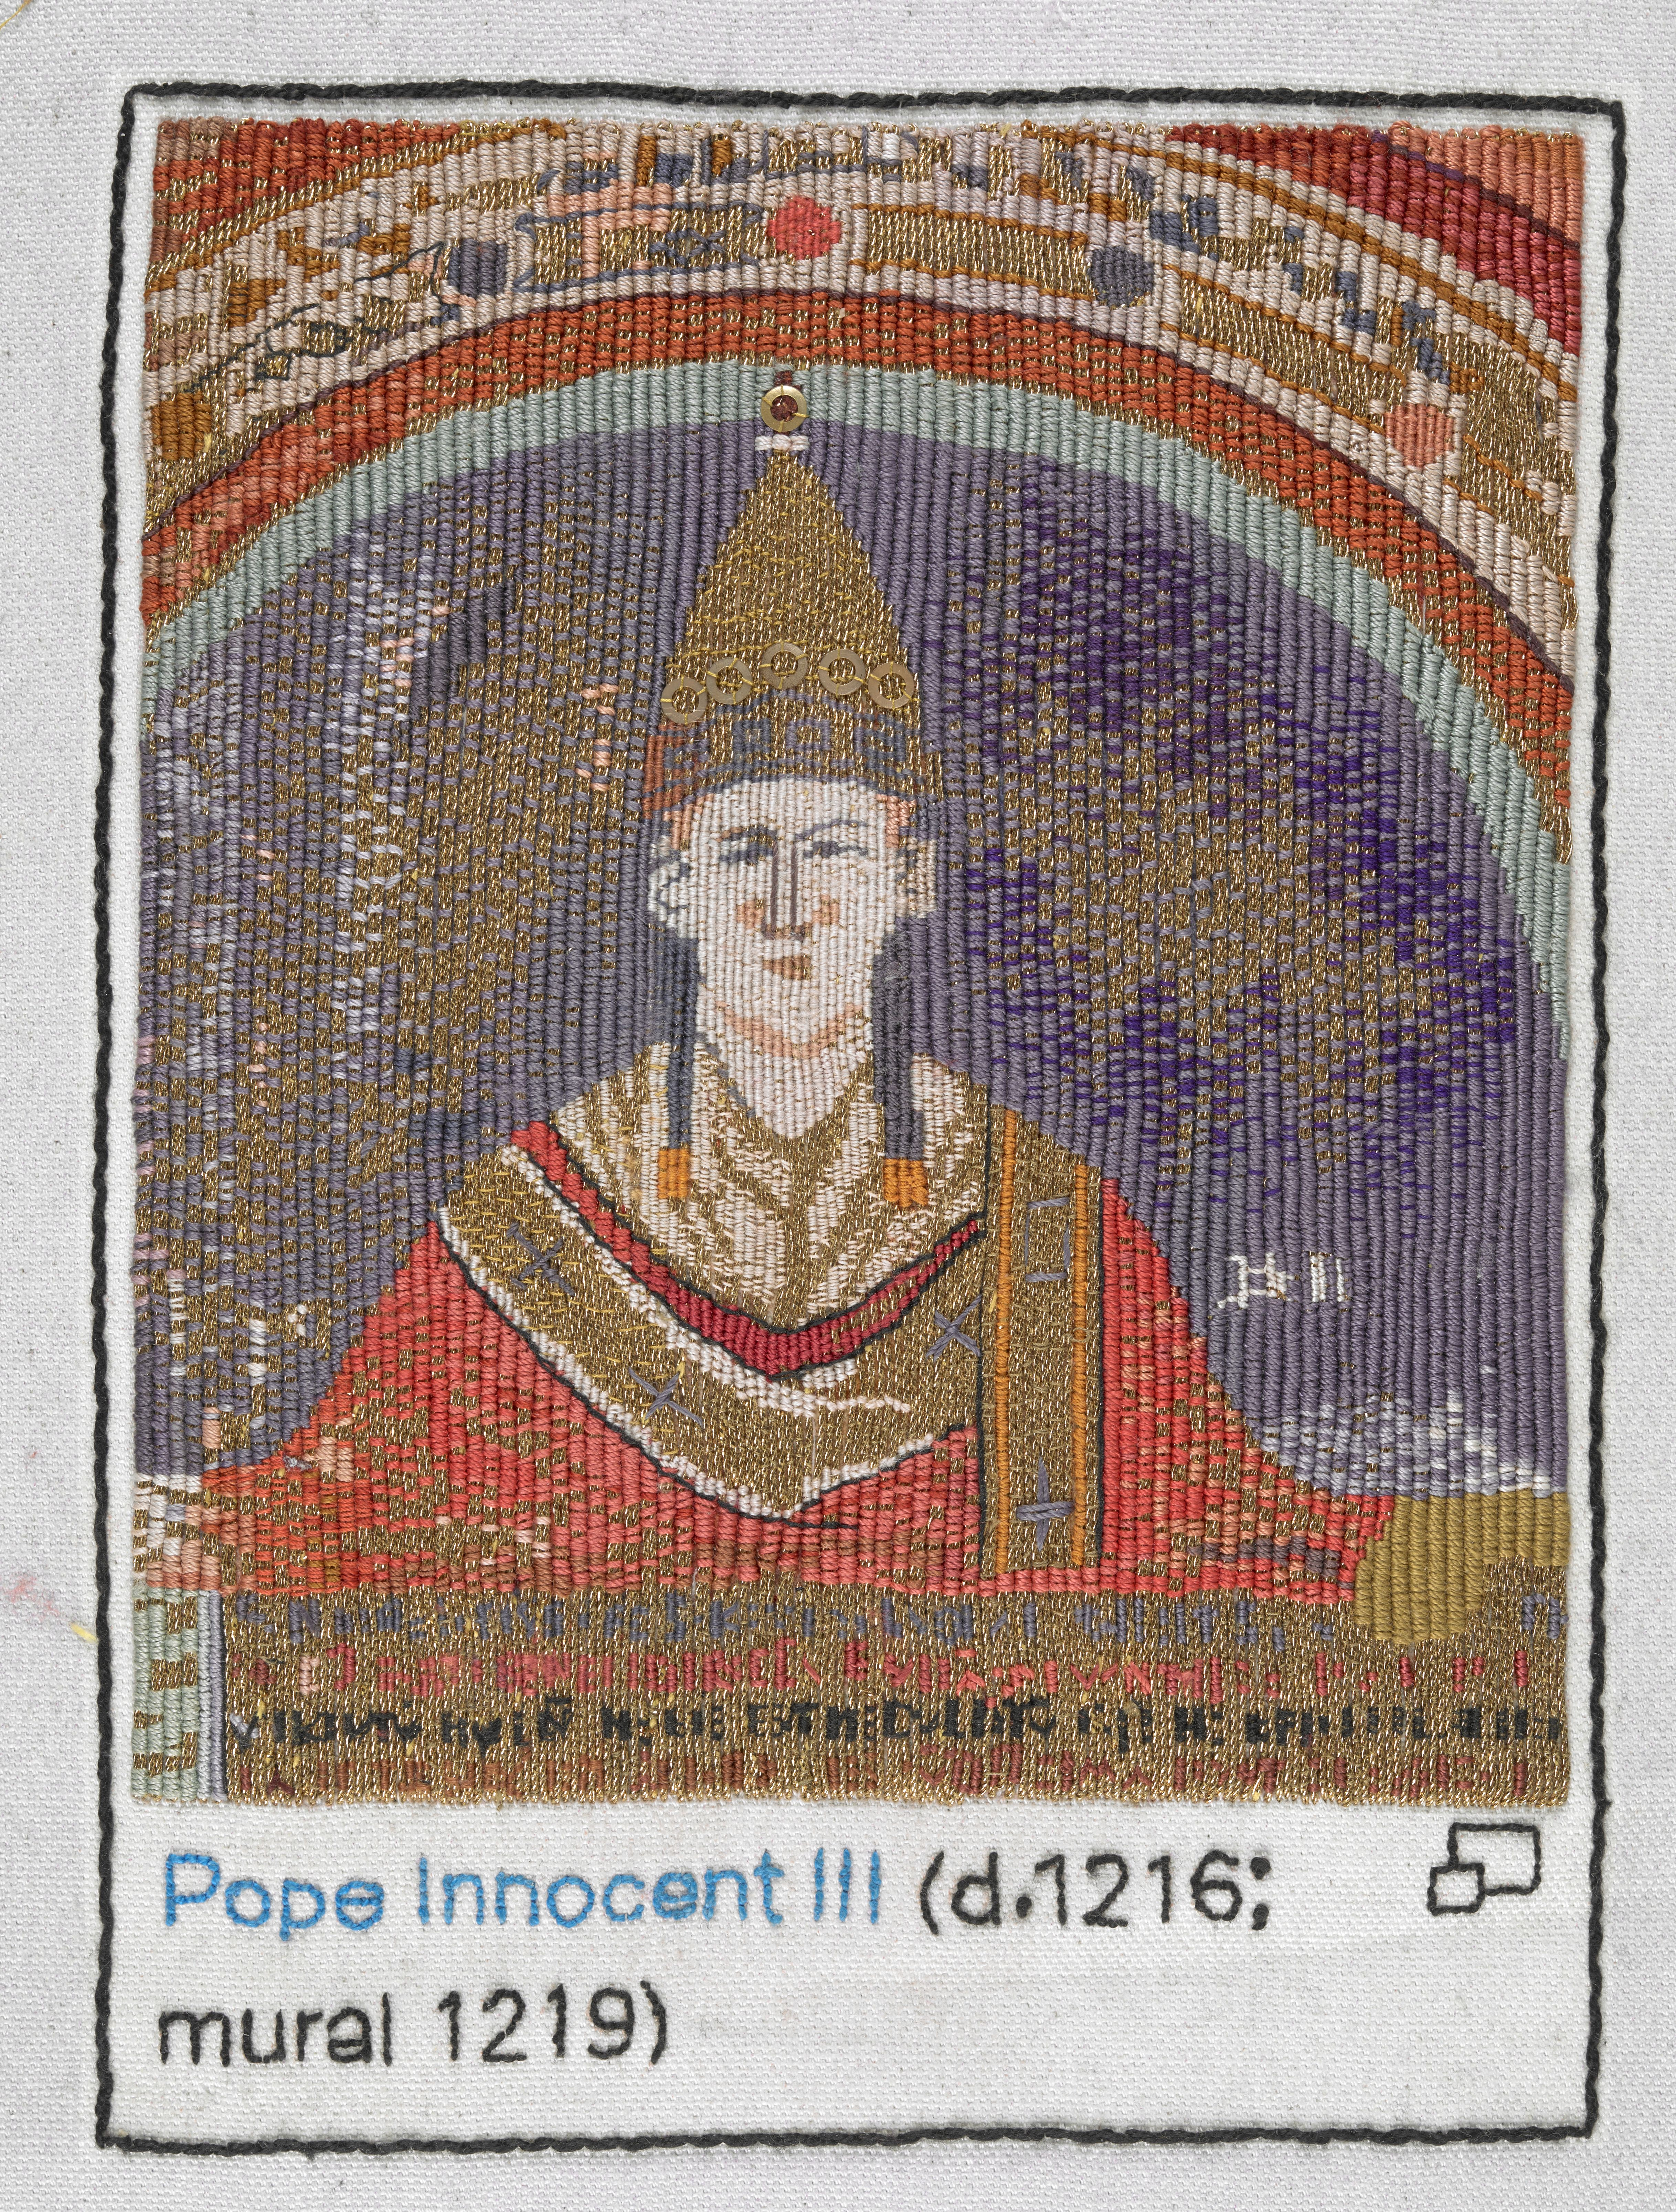 Pope Innocent III stitched by Anthea Godfrey, Embroiderers' Guild (Eastern Region). Part of Cornelia Parker's Magna Carta (An Embroidery) at the British Library. Photography © British Library